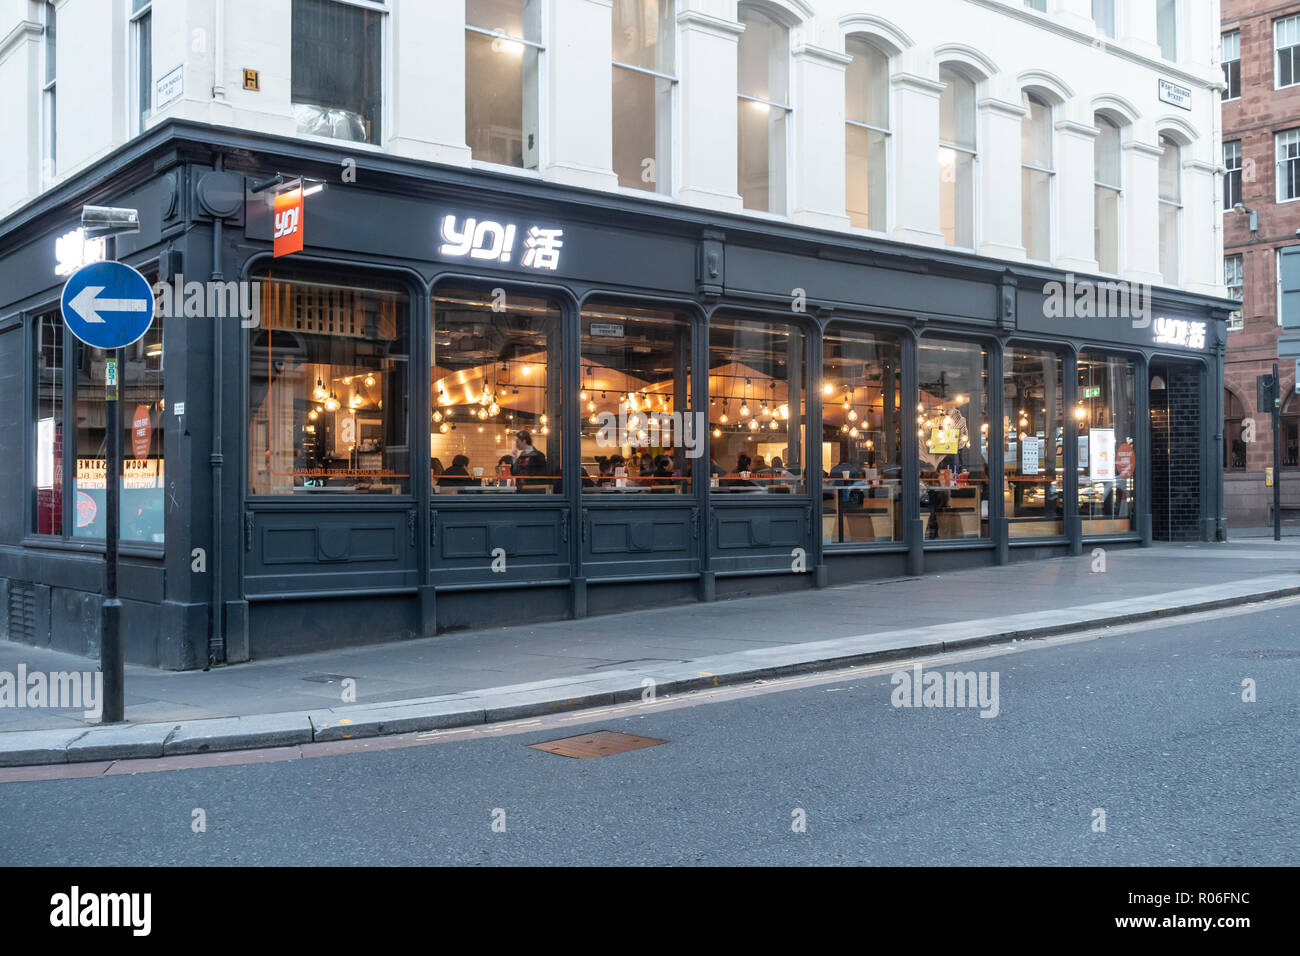 Branch of the Yo! Japanese street food and sushi restaurant in central Glasgow, Scotland, UK - Stock Image